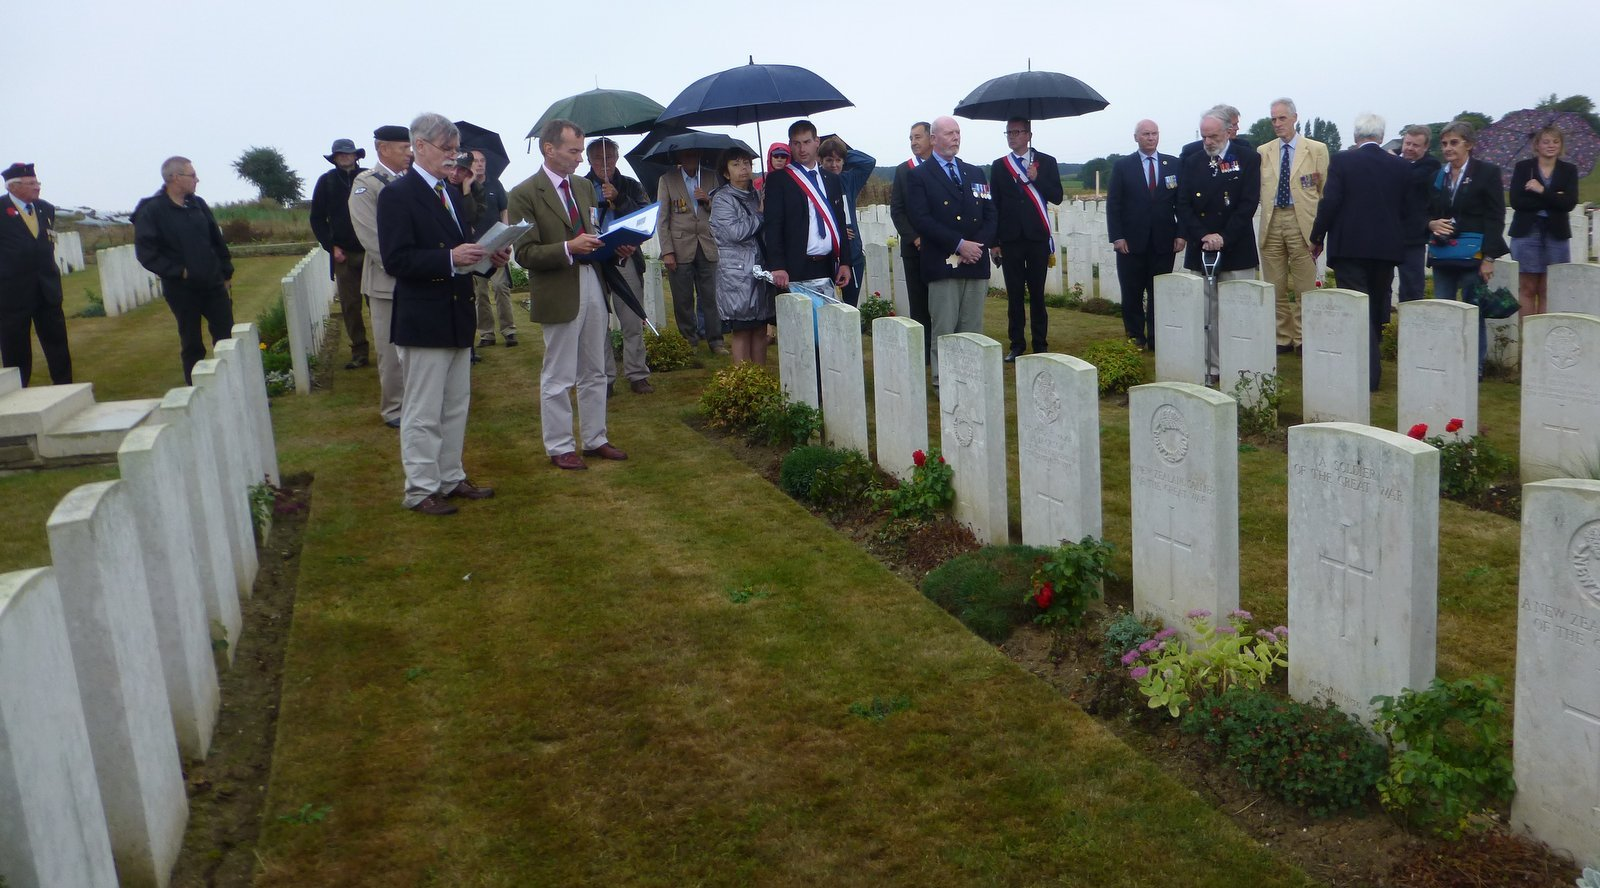 Remembering the fallen at Bulls Road cemetery